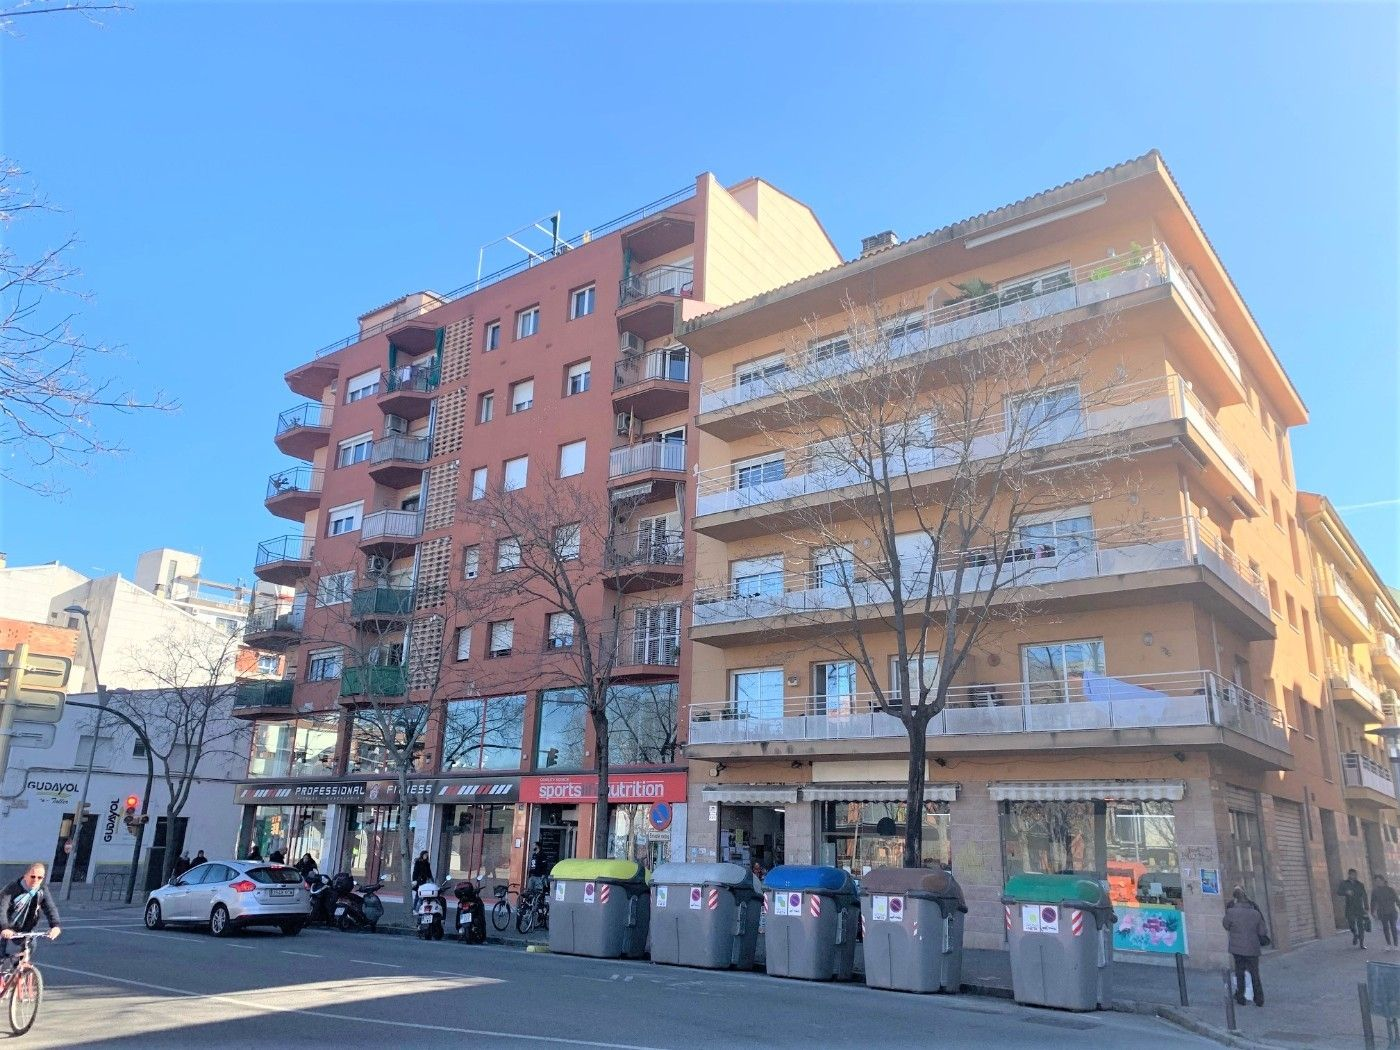 Apartament  Carrer orient. Oportunidad en exclusiva